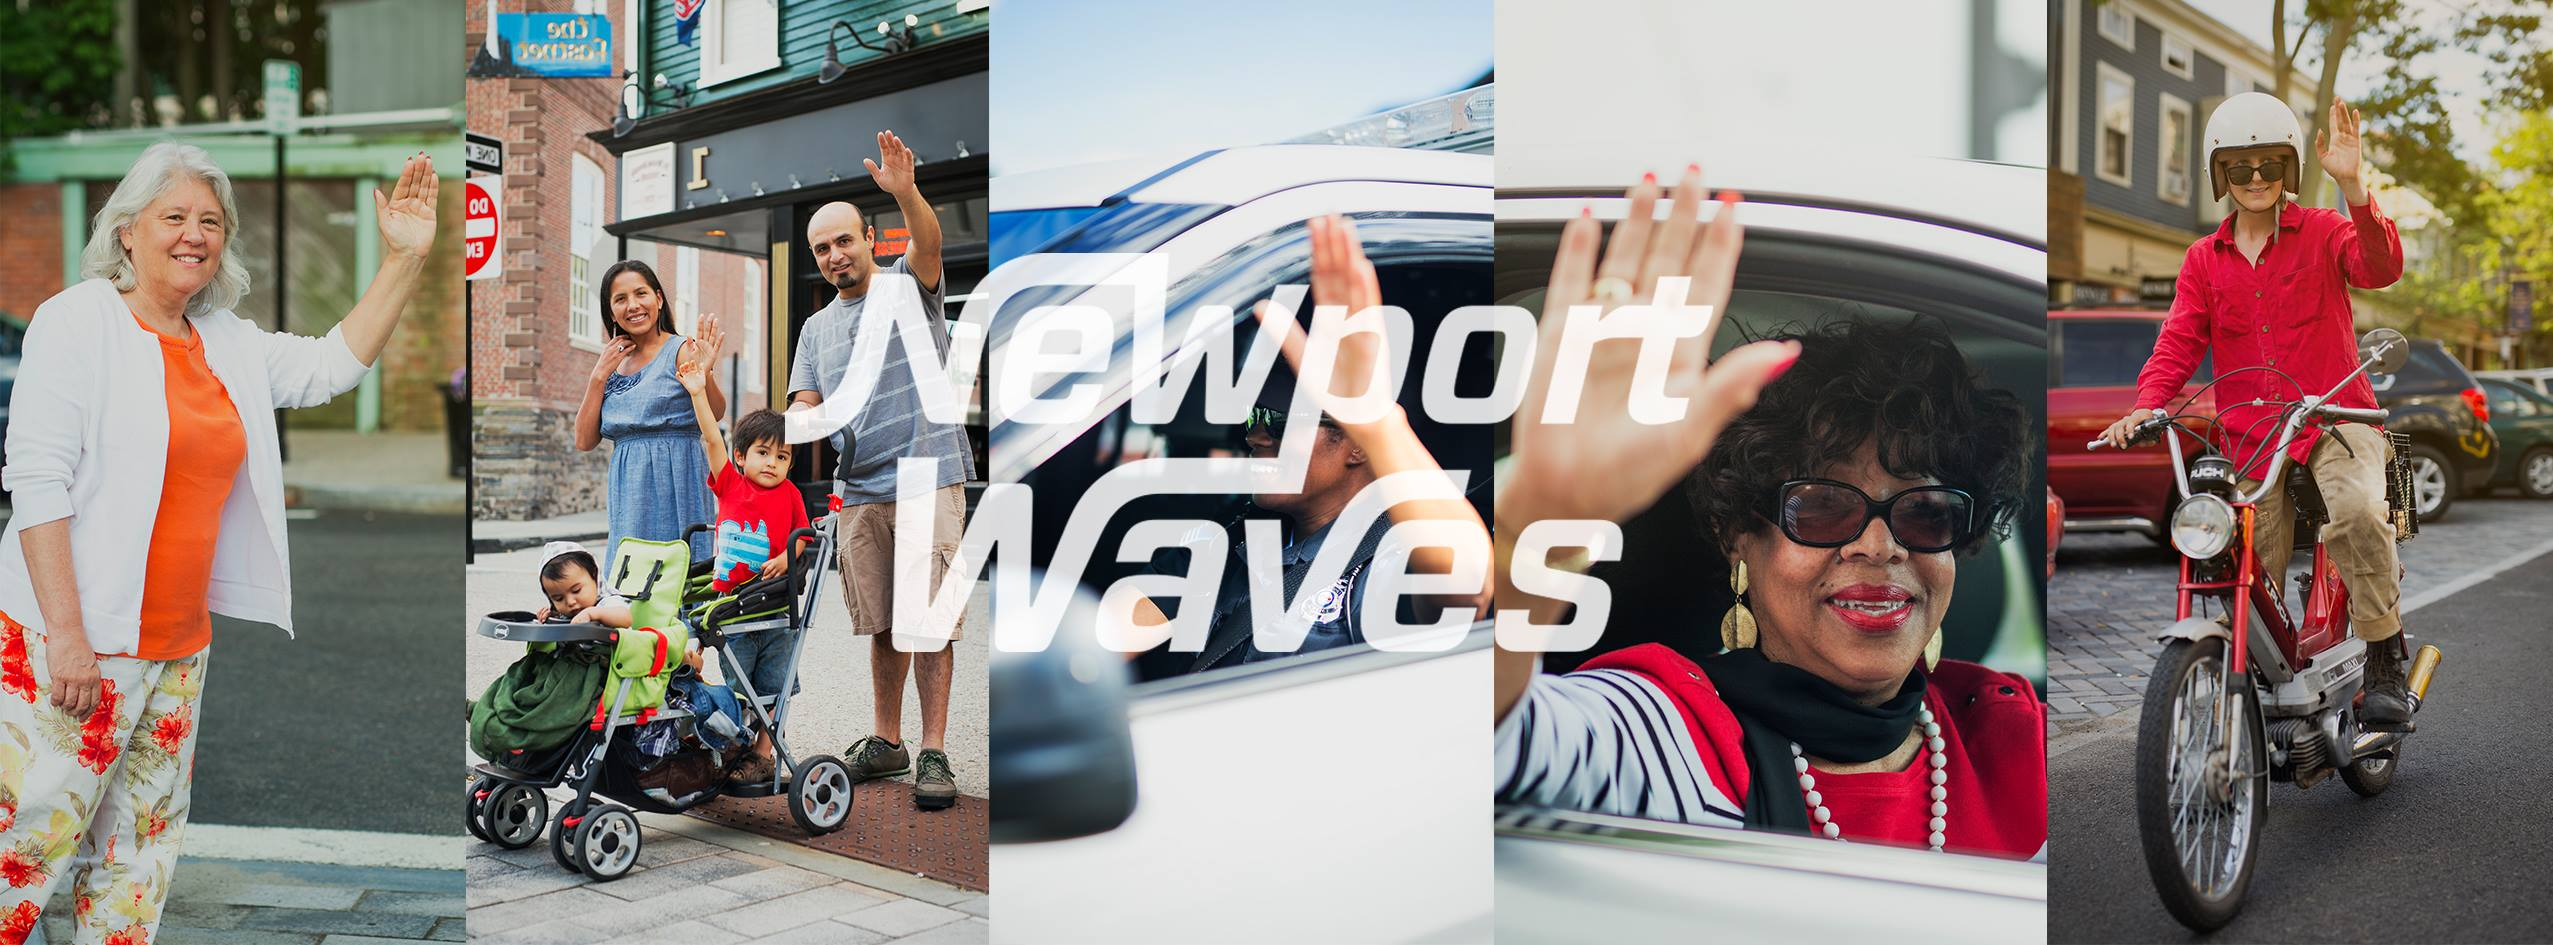 newport waves